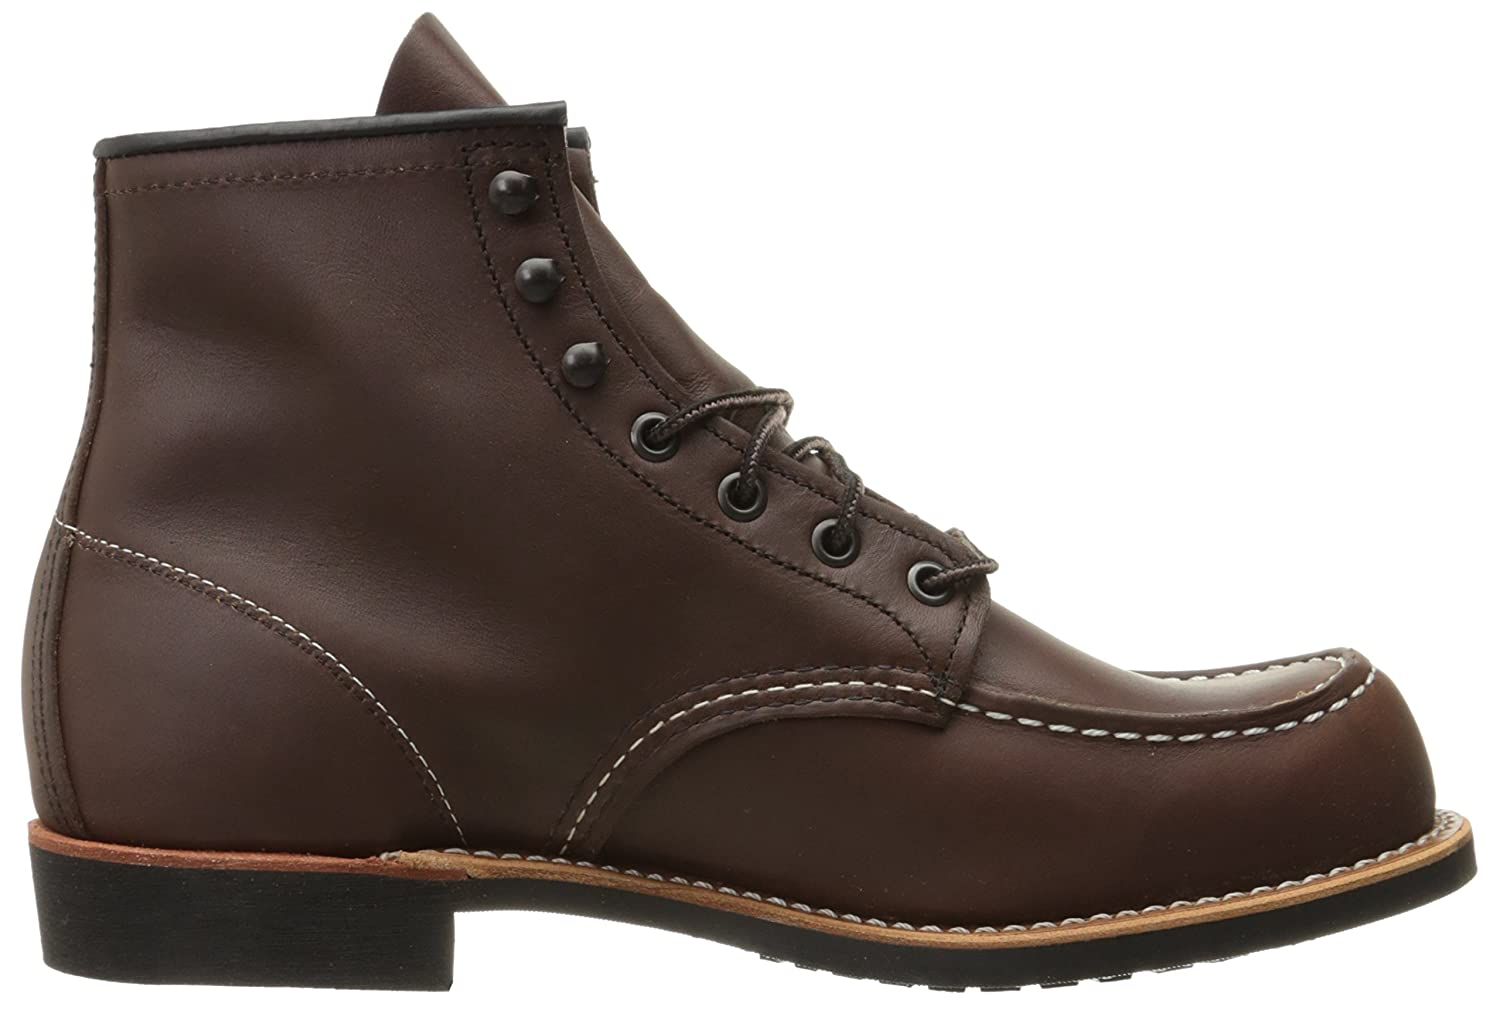 Mens Vintage Style Shoes| Retro Classic Shoes Red Wing Heritage Mens Cooper Boot $313.74 AT vintagedancer.com